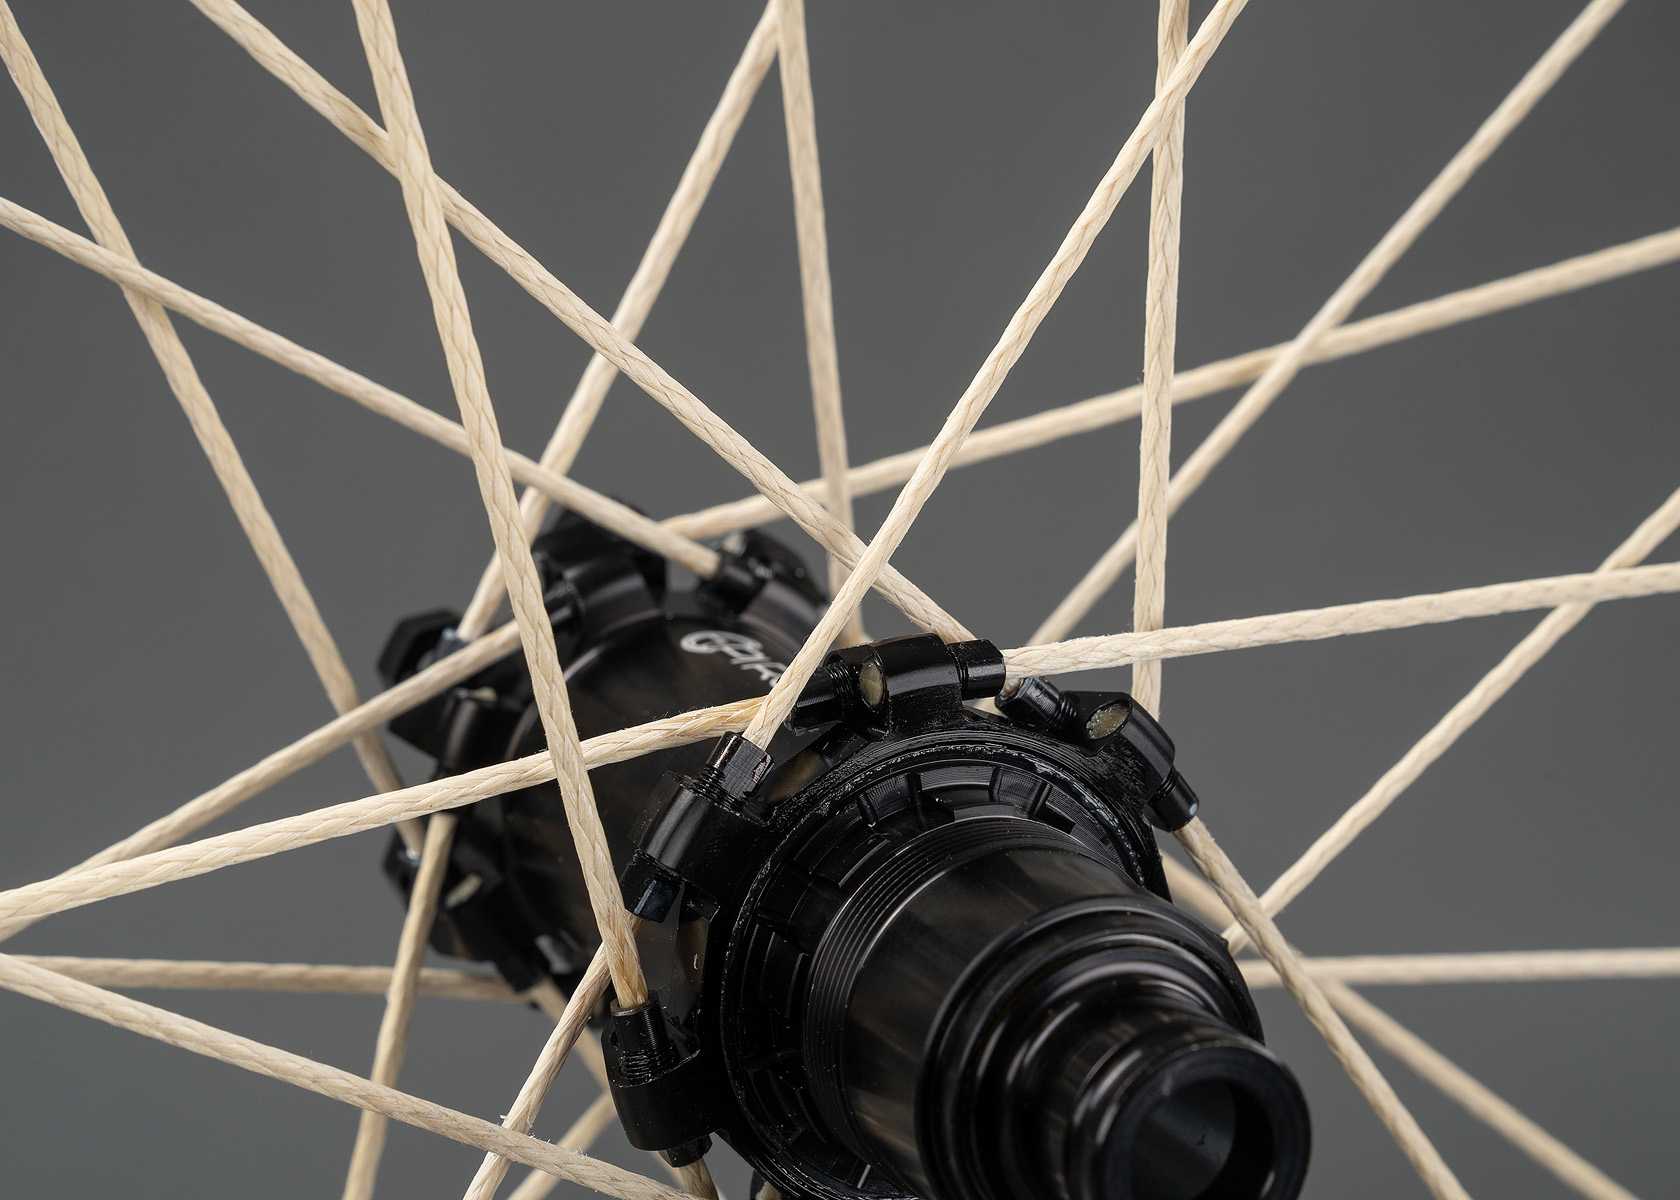 Be careful crossing the fibre spokes over one another. One wheel can take up to 32 spokes. (Source: Pi Rope)